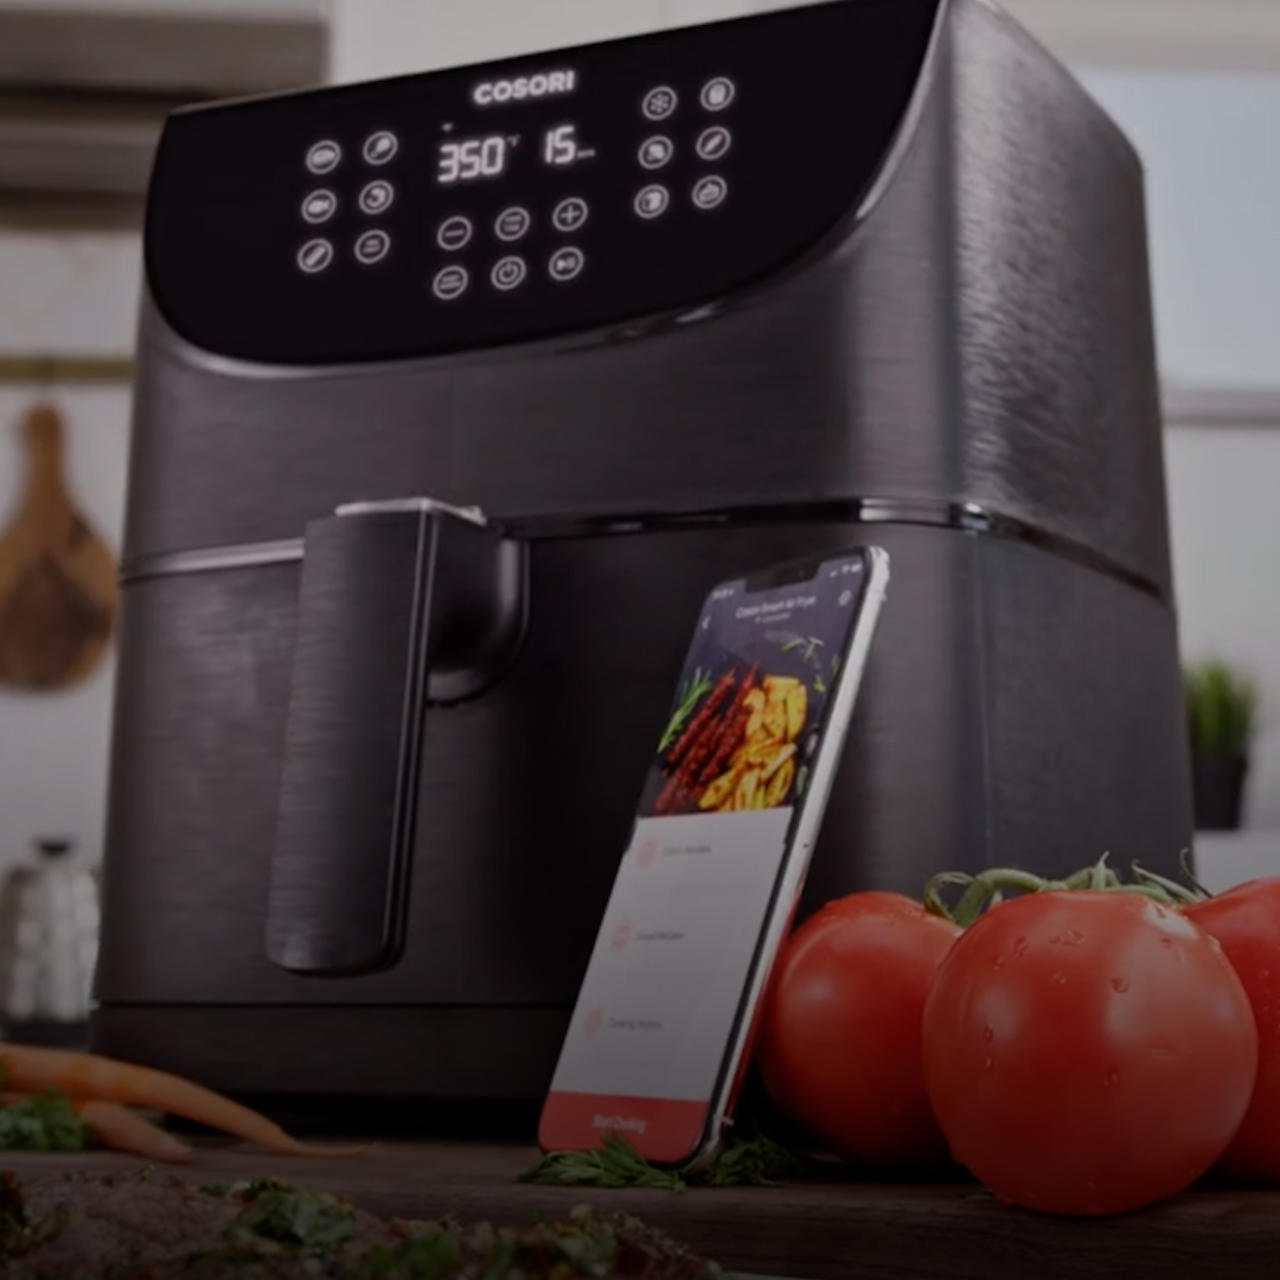 Get a great deal on this smart air fryer today during Amazon Prime Day